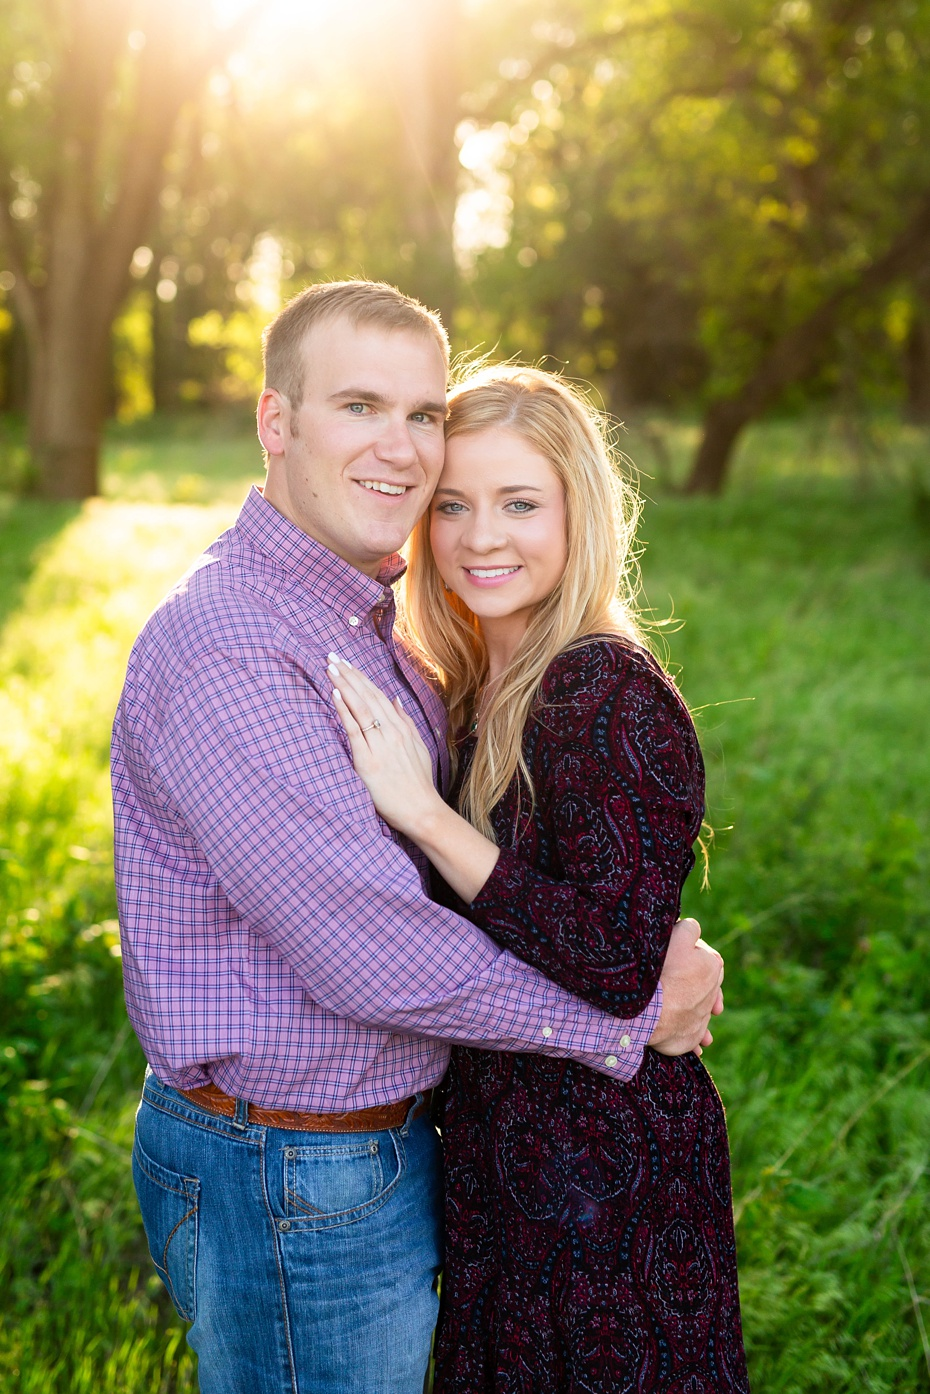 engagement_truly_you_photography_enid_photographer-16_web-1.jpg